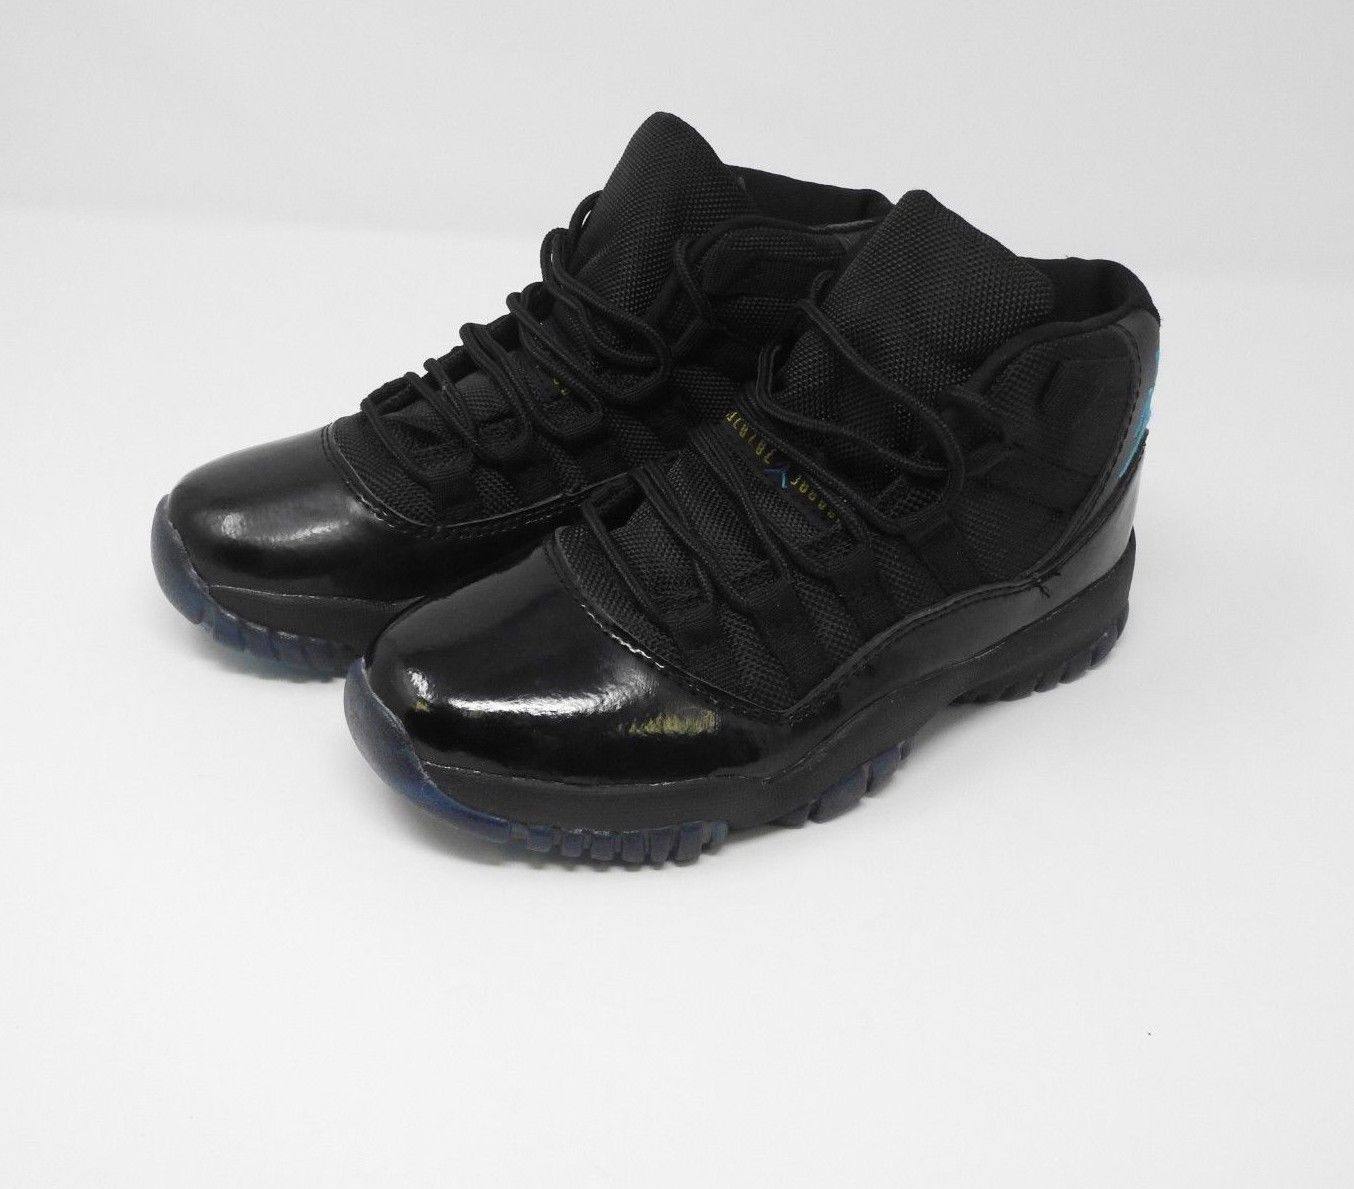 a6ba67f897f9f4 Nike Air Jordan 11 Retro (GS)